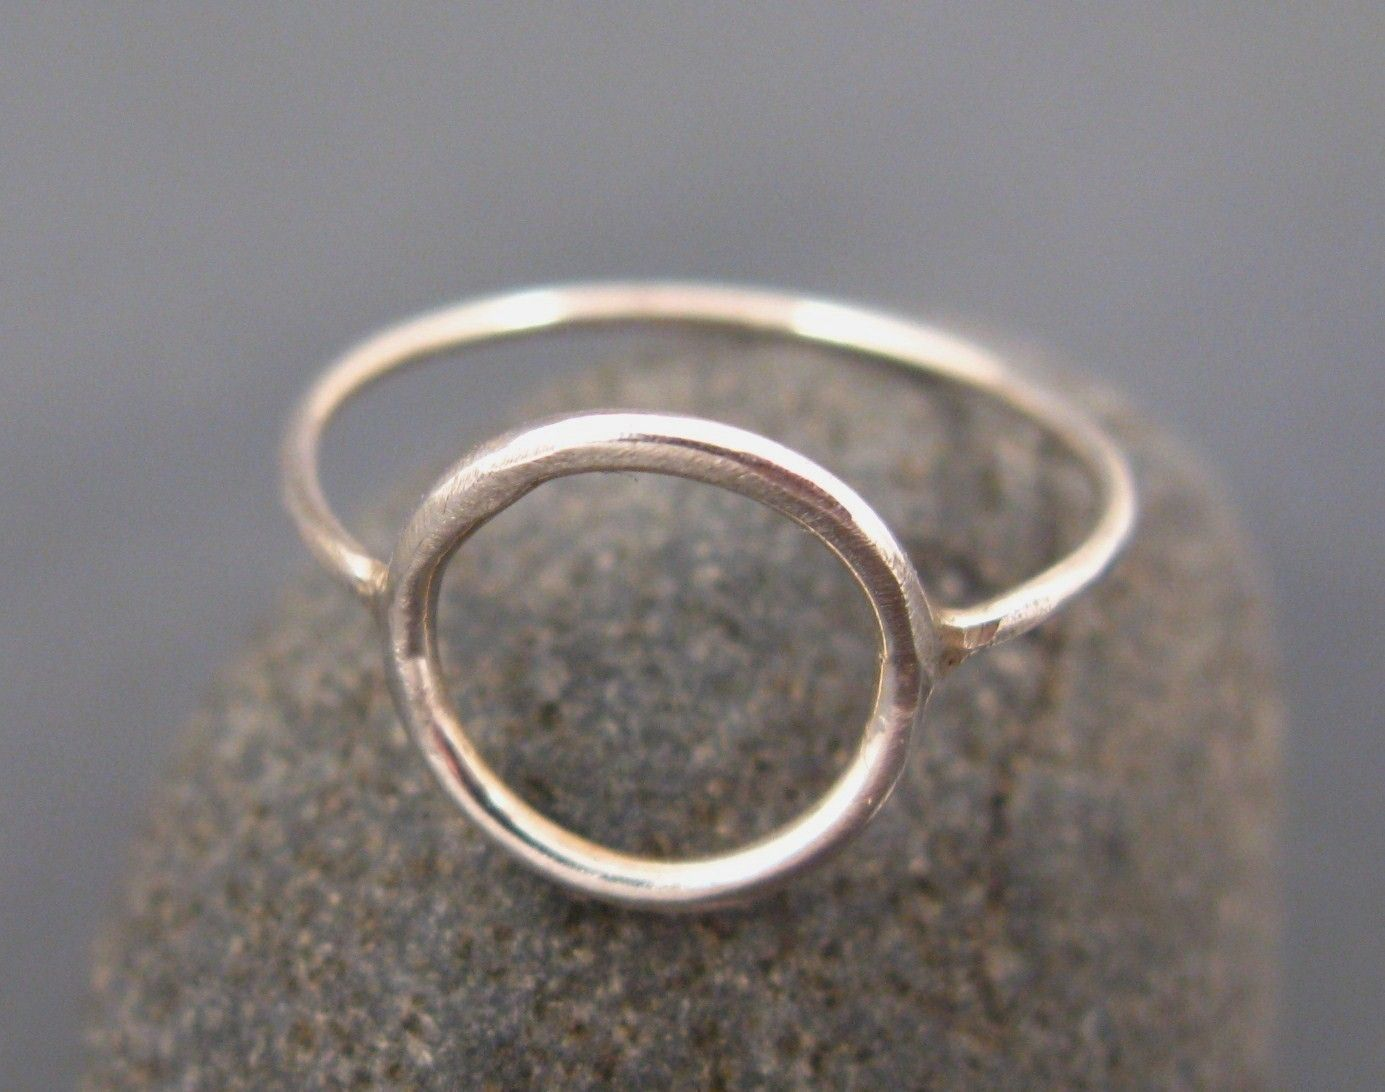 Silver Jewelry, Silver Circle Ring, Infinity Circle Ring, Engagement Ring  $2800,